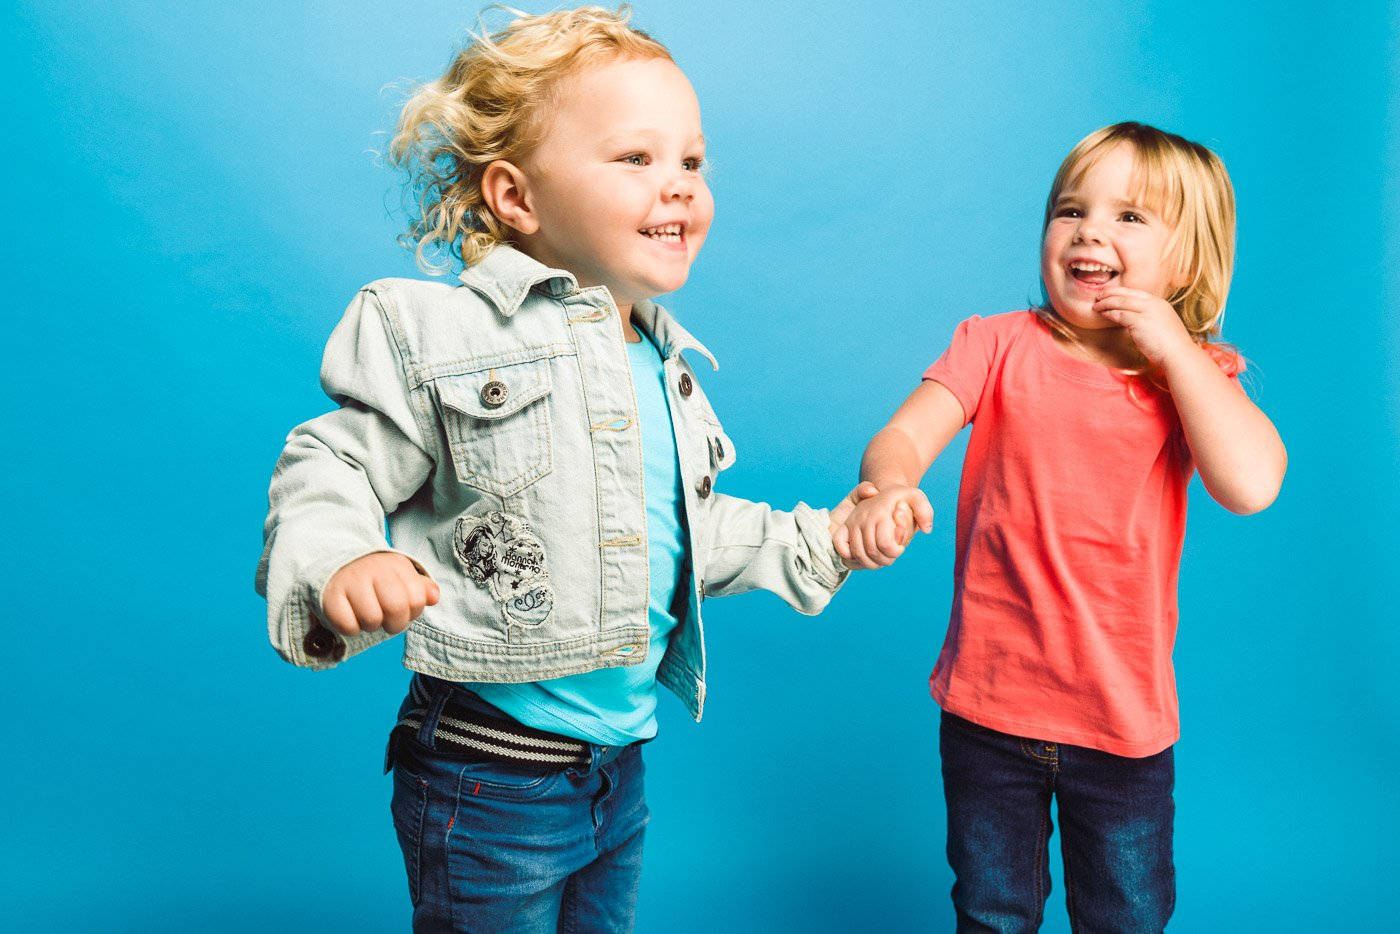 Jeans for Genes Day 2015 Campaign